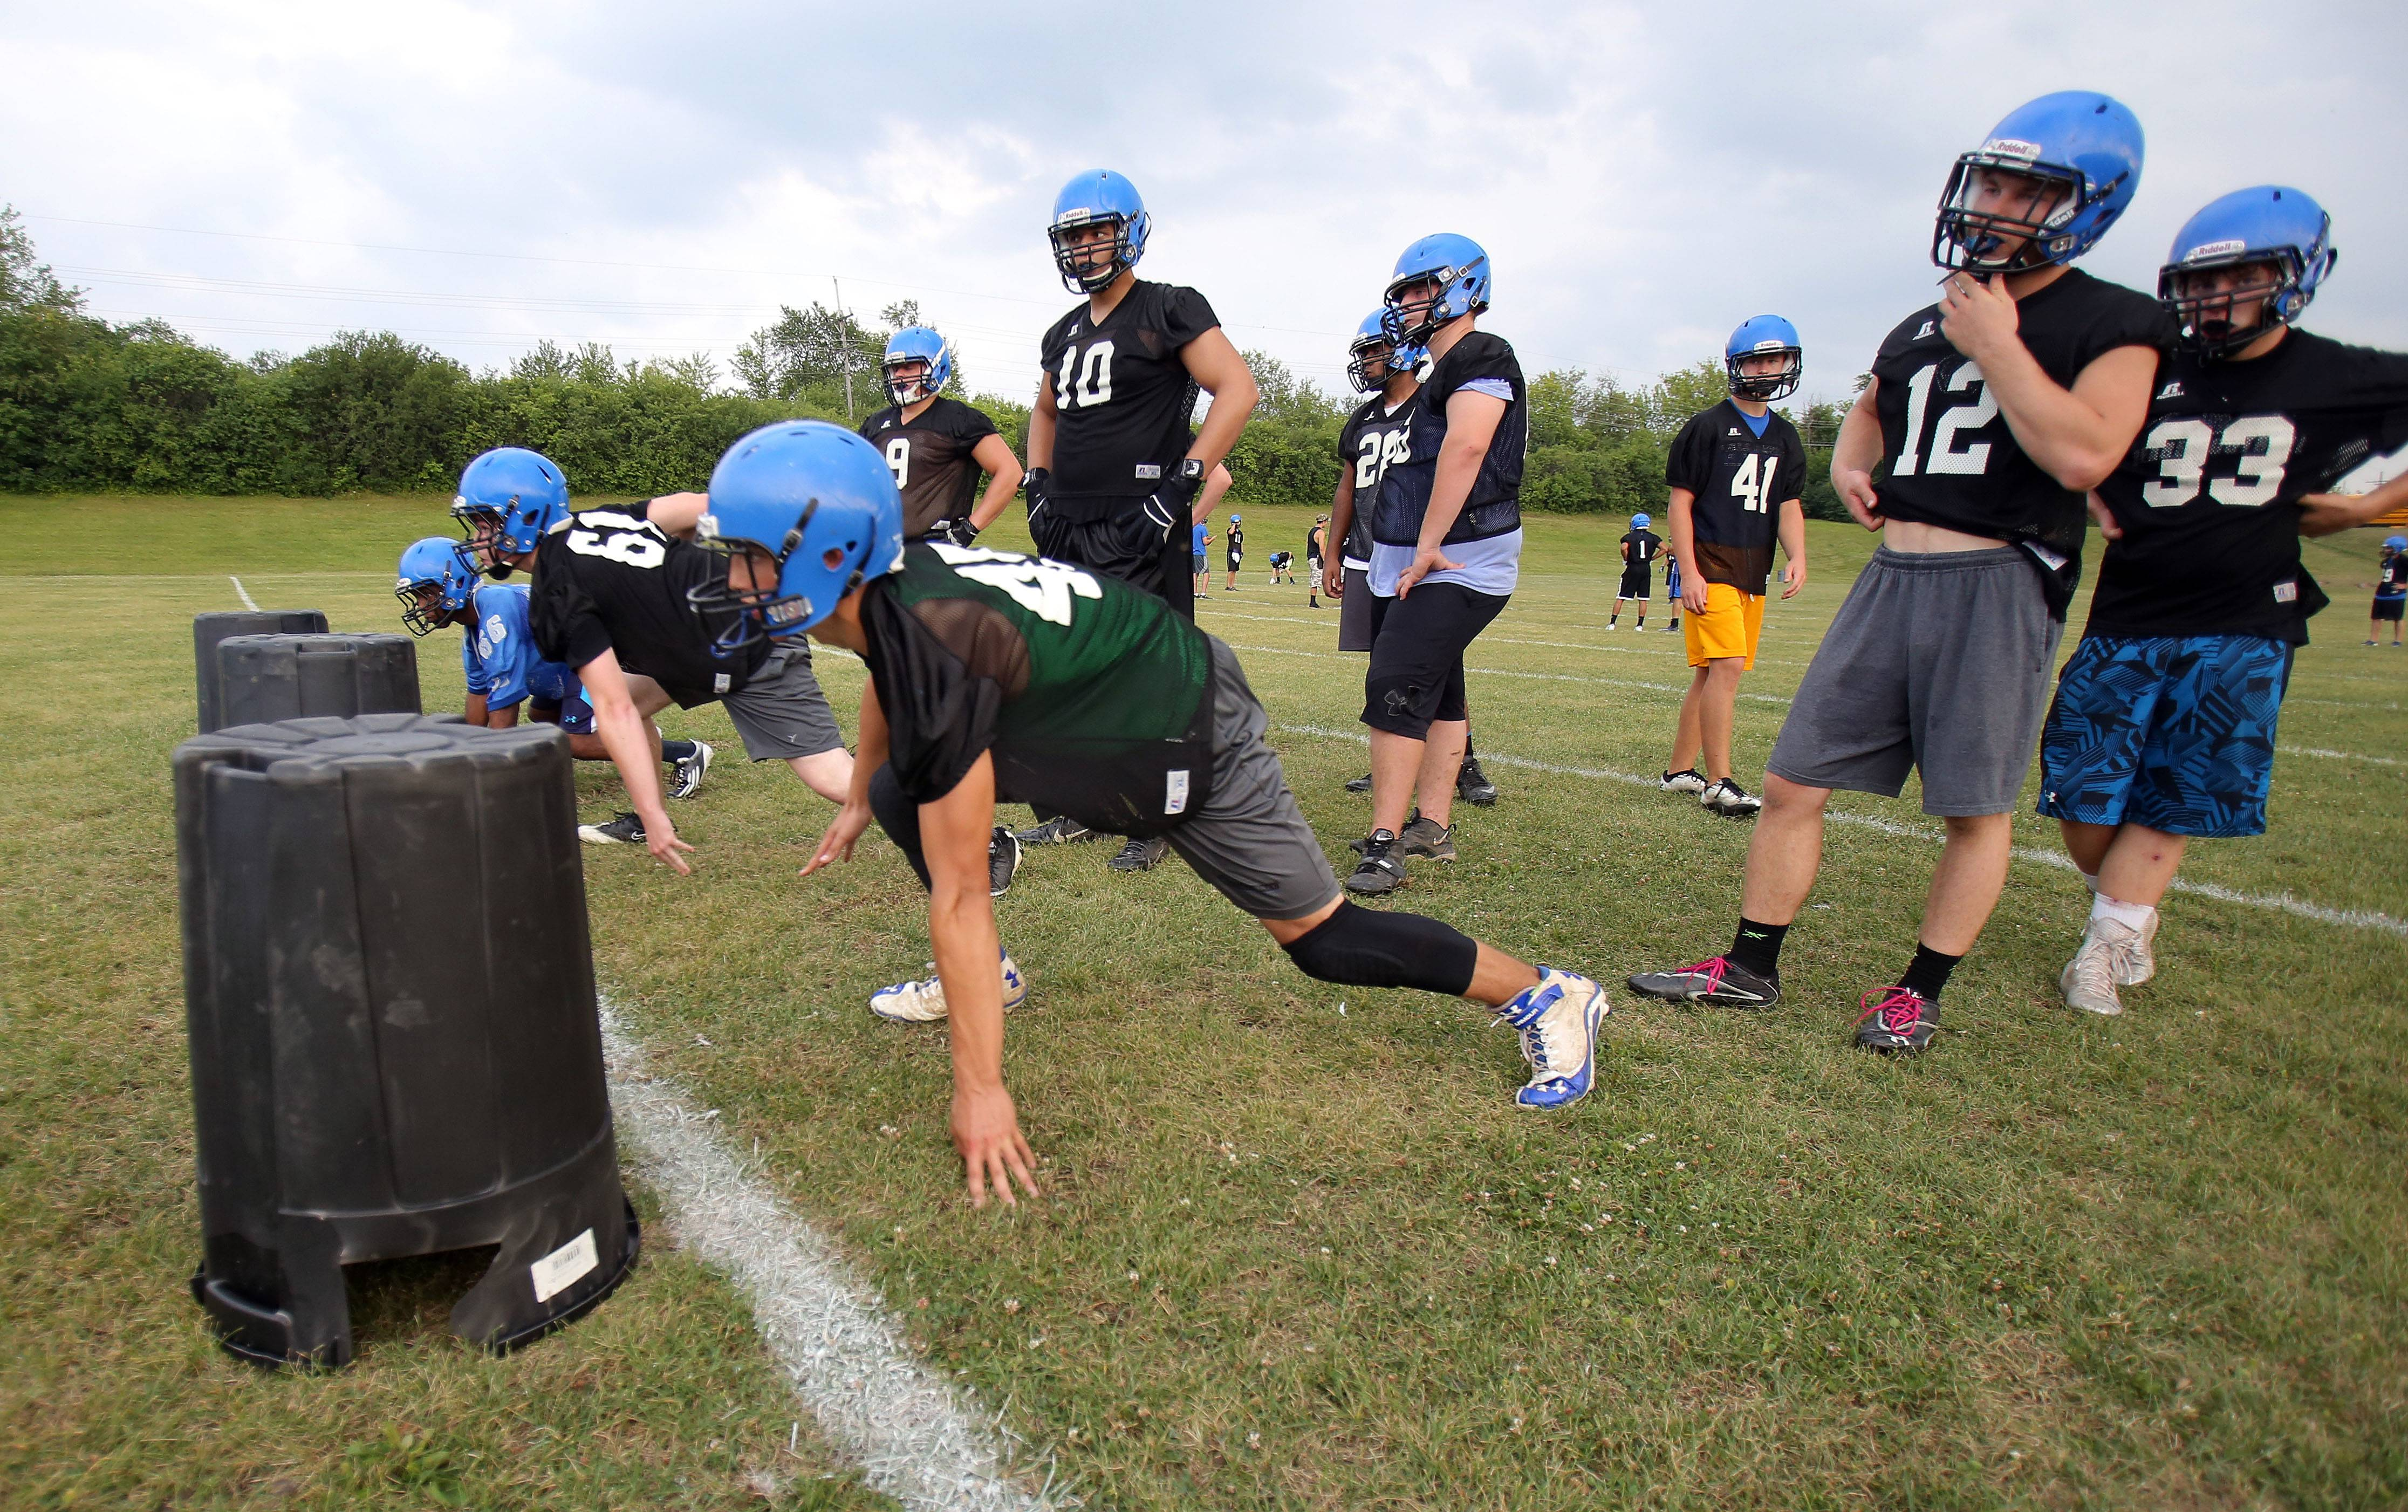 Players go through drills during football practice Monday at Lake Zurich.